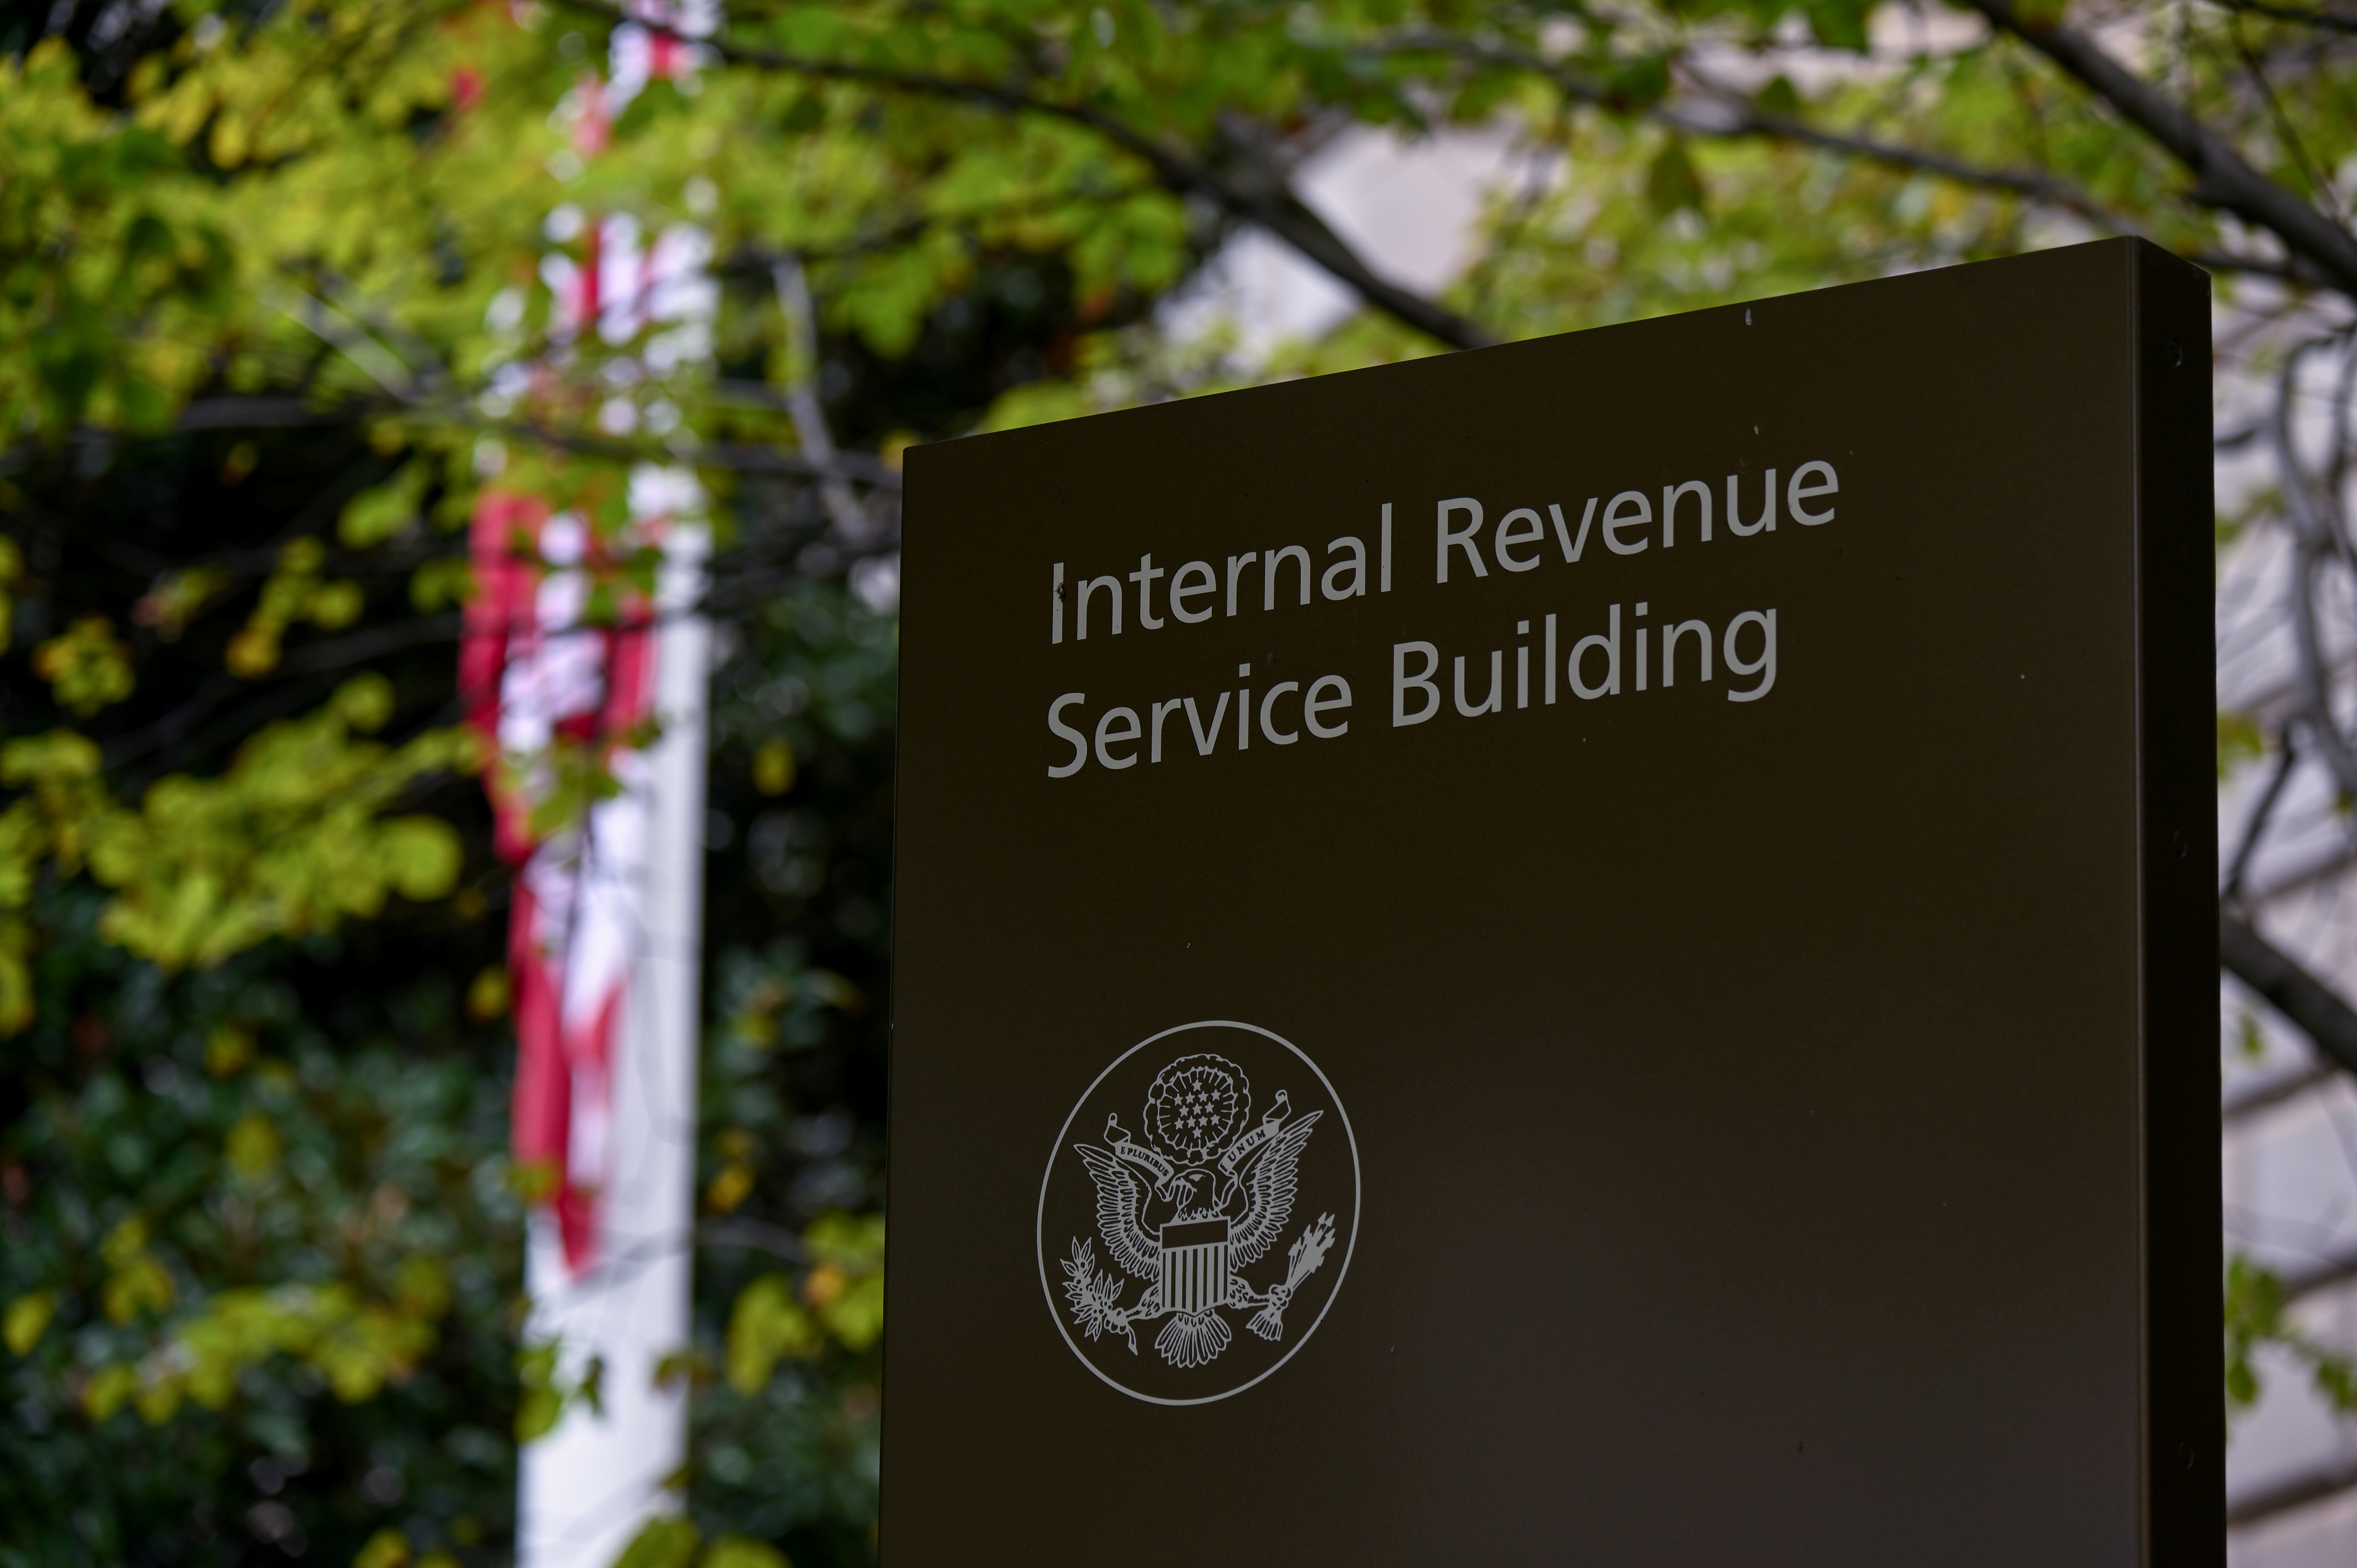 A sign for the Internal Revenue Service (IRS) building is seen in Washington, U.S. September 28, 2020. REUTERS/Erin Scott